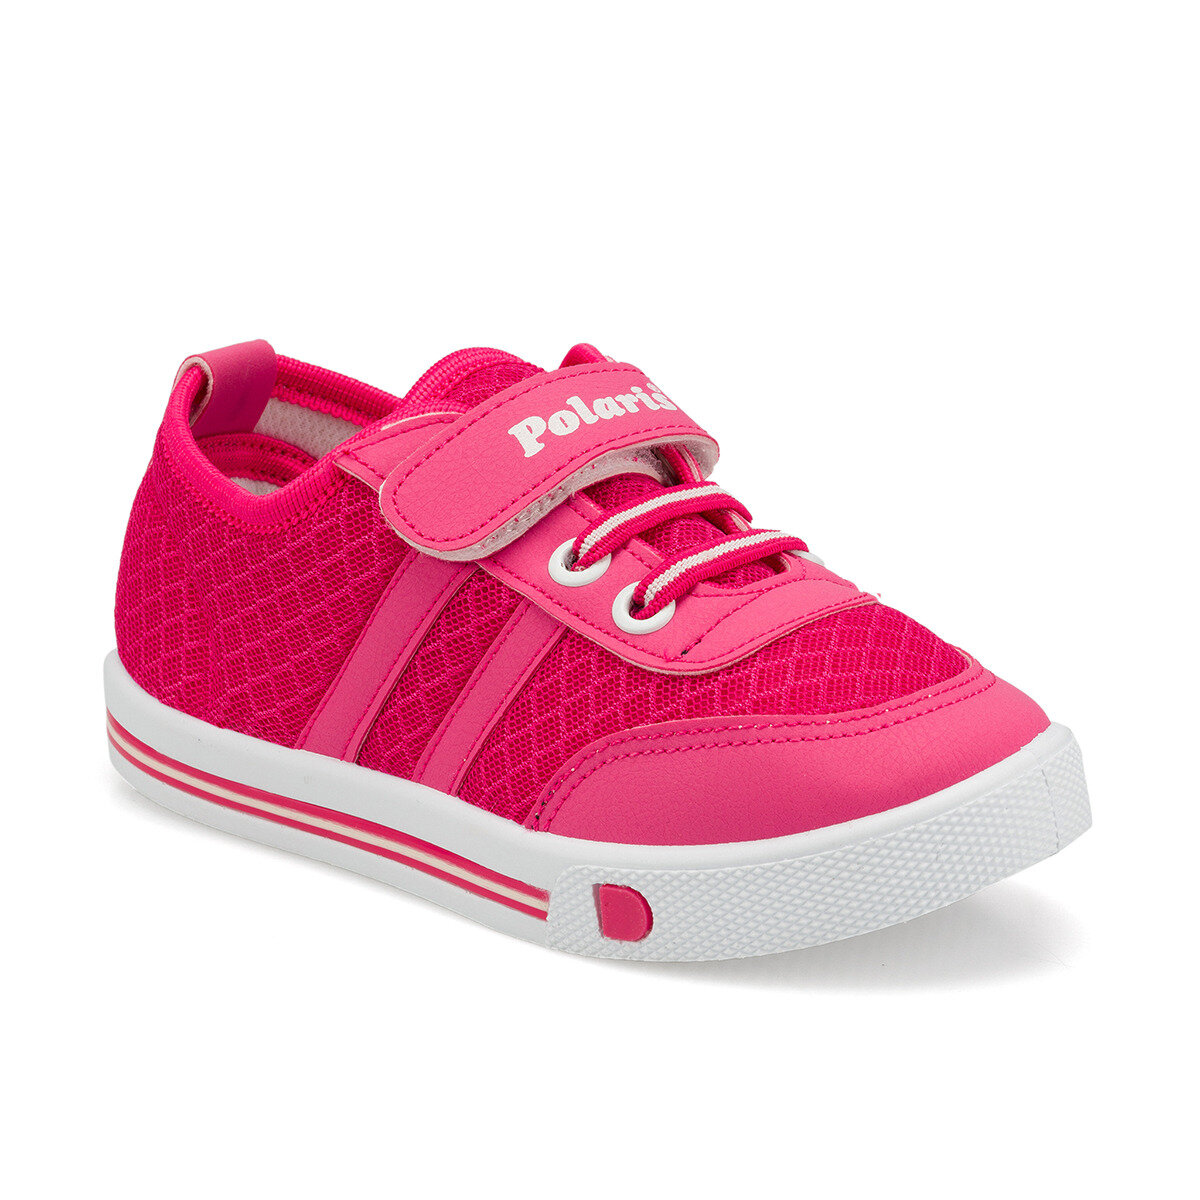 FLO 512540.P Fuchsia Girls Children Shoes Polaris